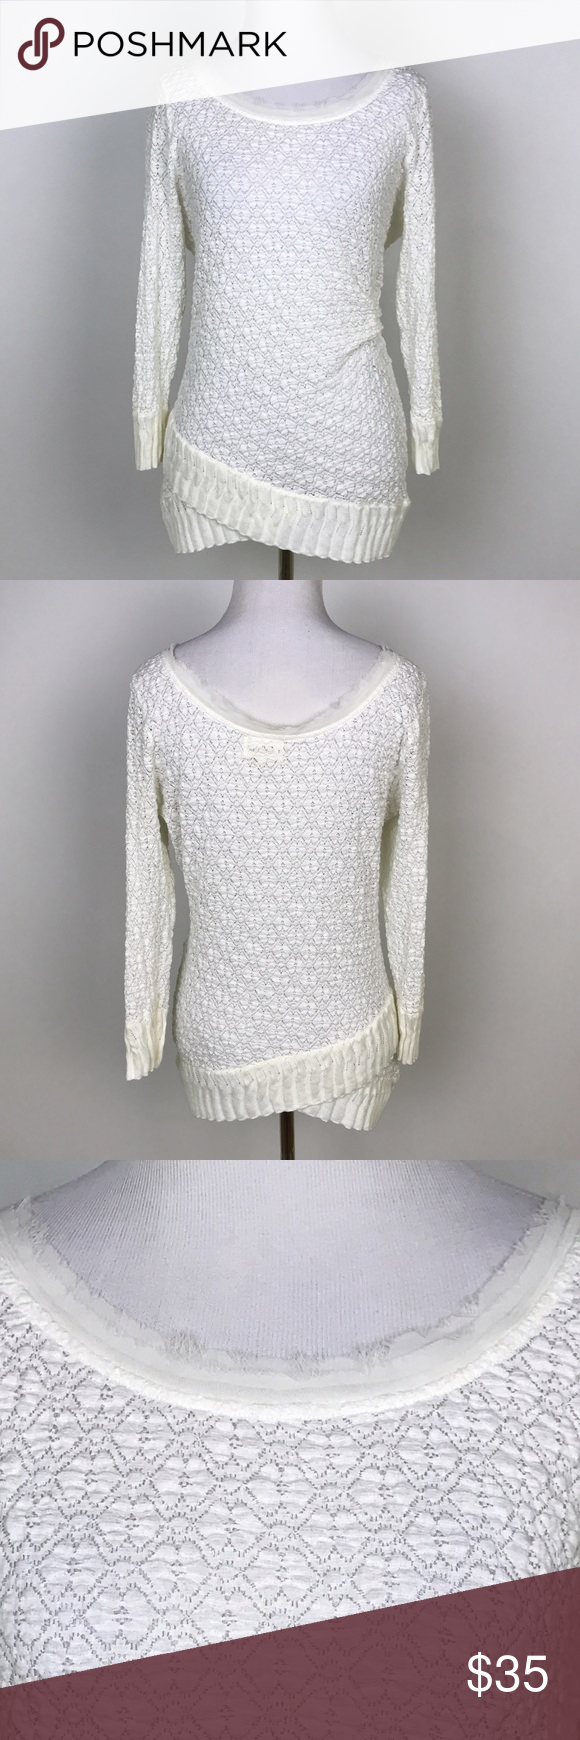 """[Anthropologie] Deletta Ivory Sweater Wrap Gather Delicate and beautiful pullover sweater by Deletta from Anthropologie. Wide neckline. Ribbed hem with crossover detail. Gathered on left side. Very flattering.   🔹Fabric: Cotton, Nylon, Spandex 🔹Bust: 36"""" 🔹Length: 28"""" 🔹Condition: Excellent pre-owned condition. Anthropologie Sweaters"""